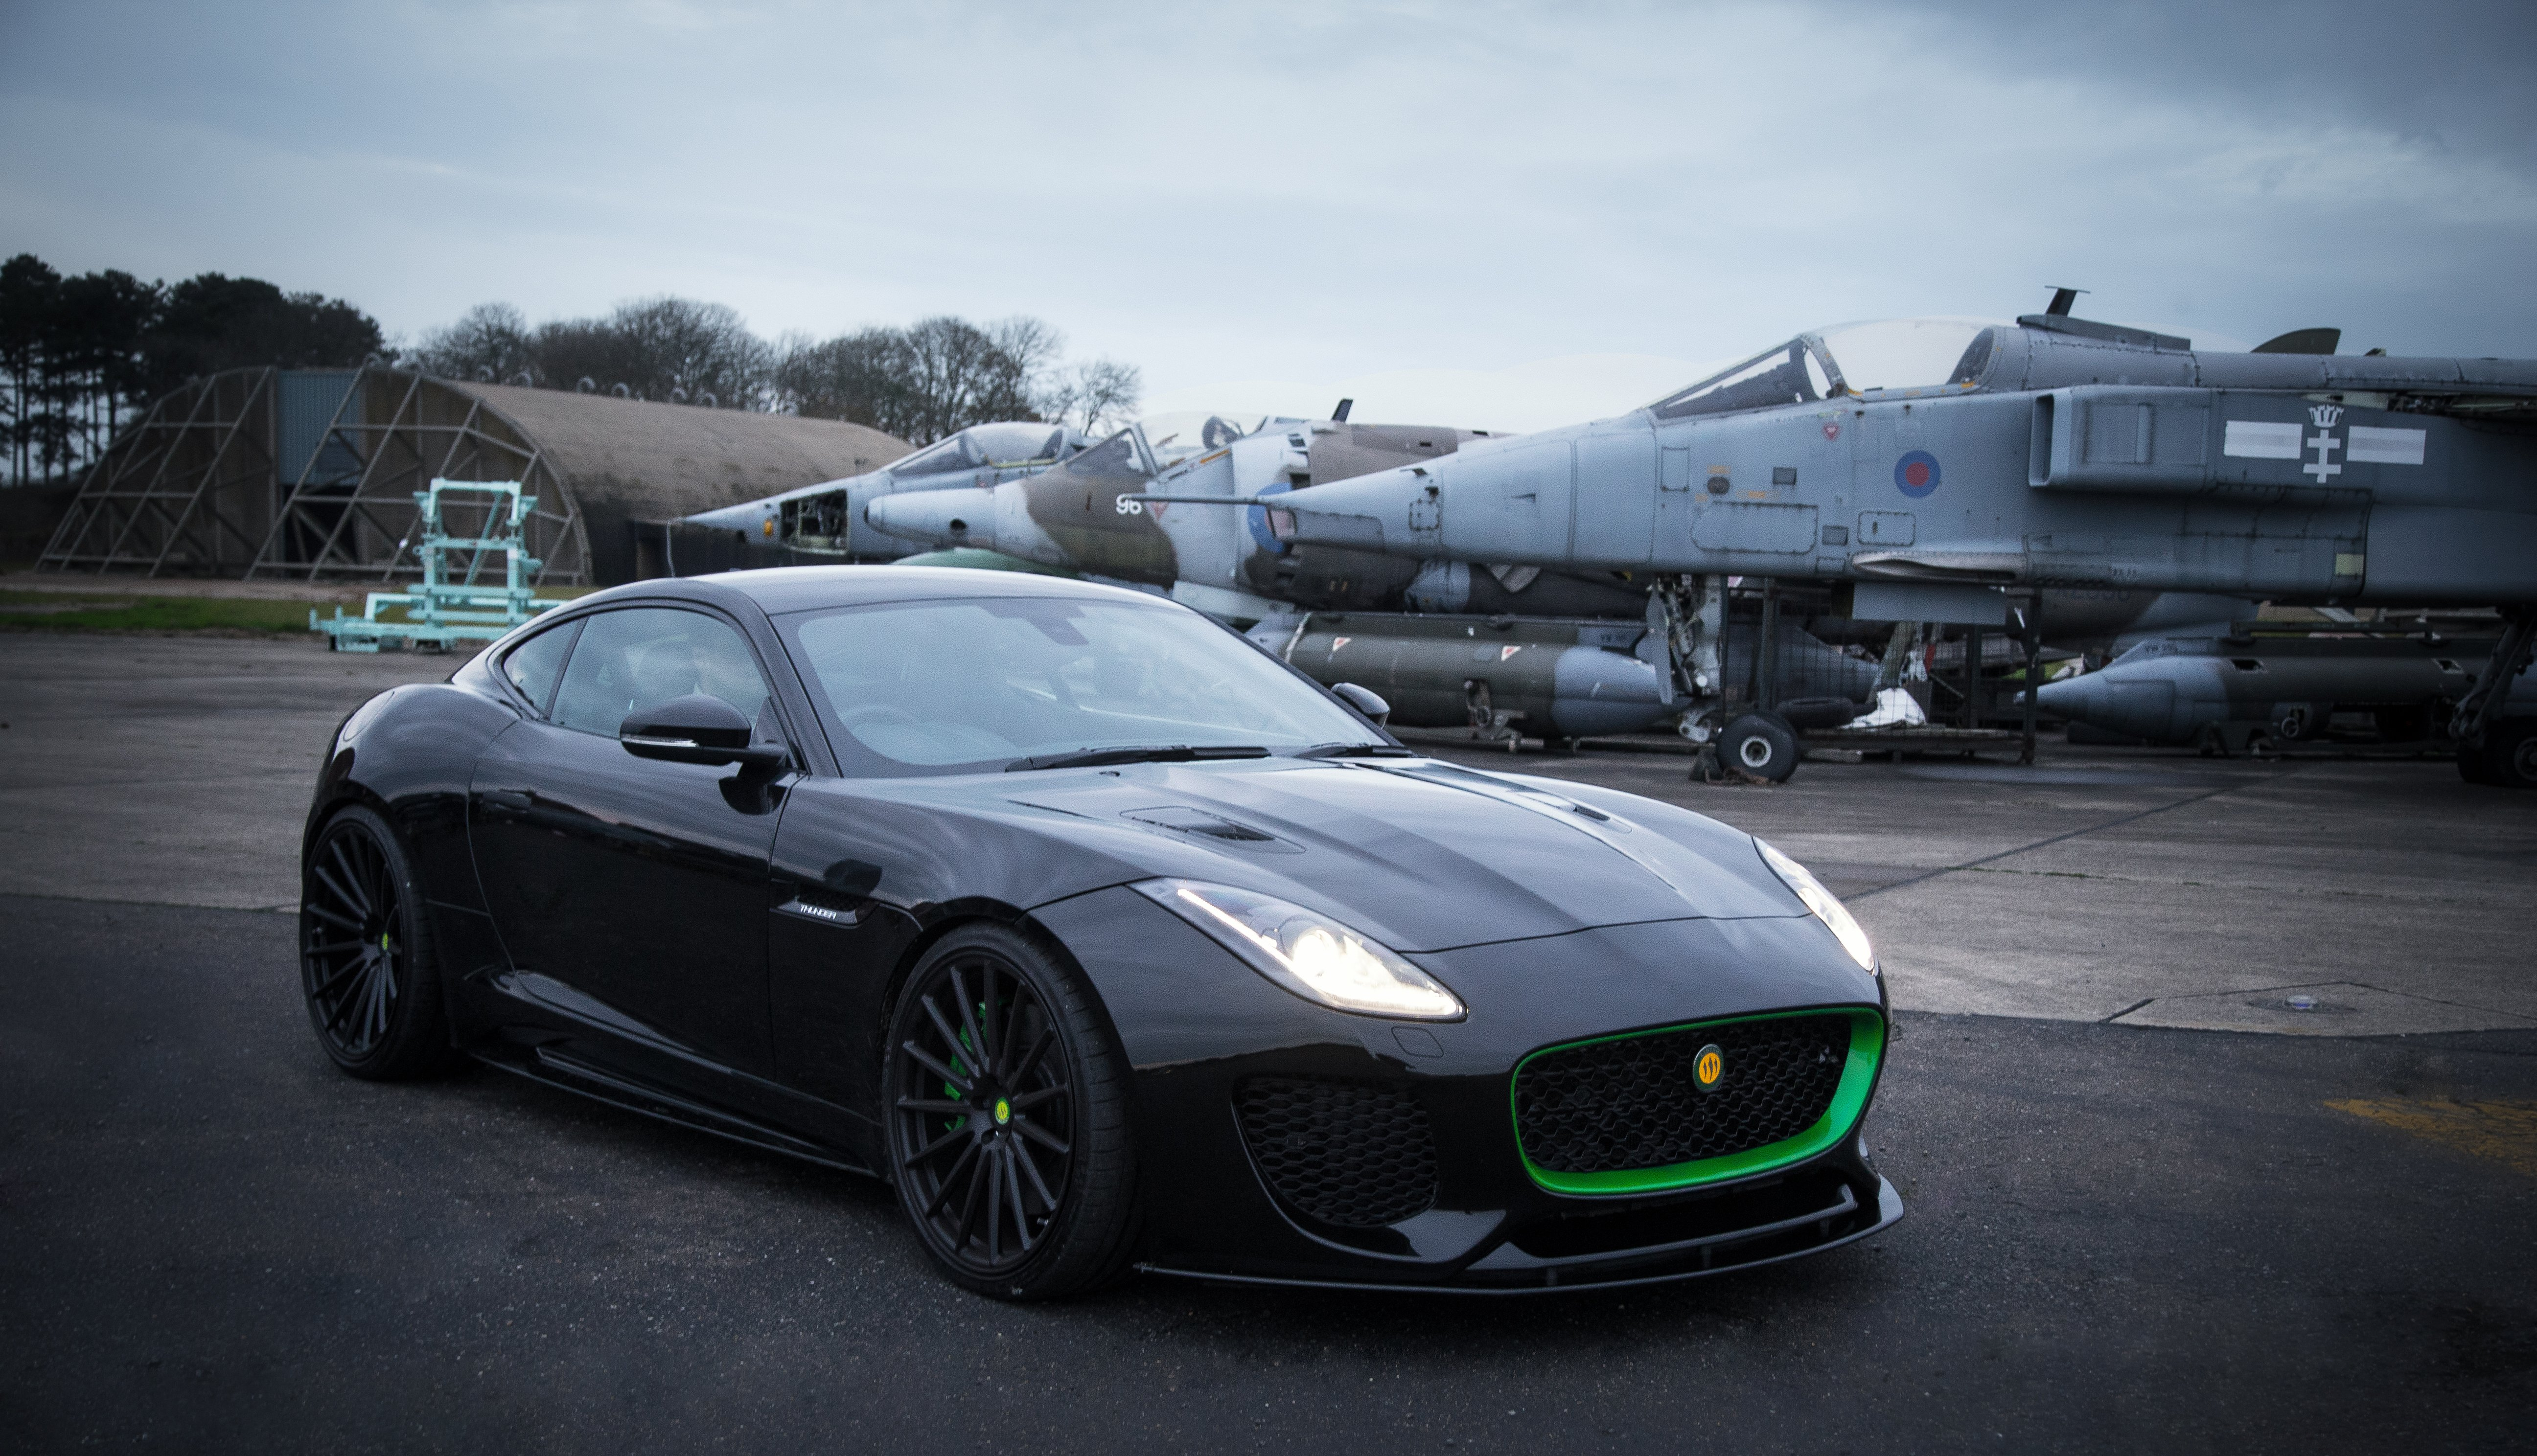 The Lister Motor Company makes thunder with the launch of it's new 200+ mph supercar